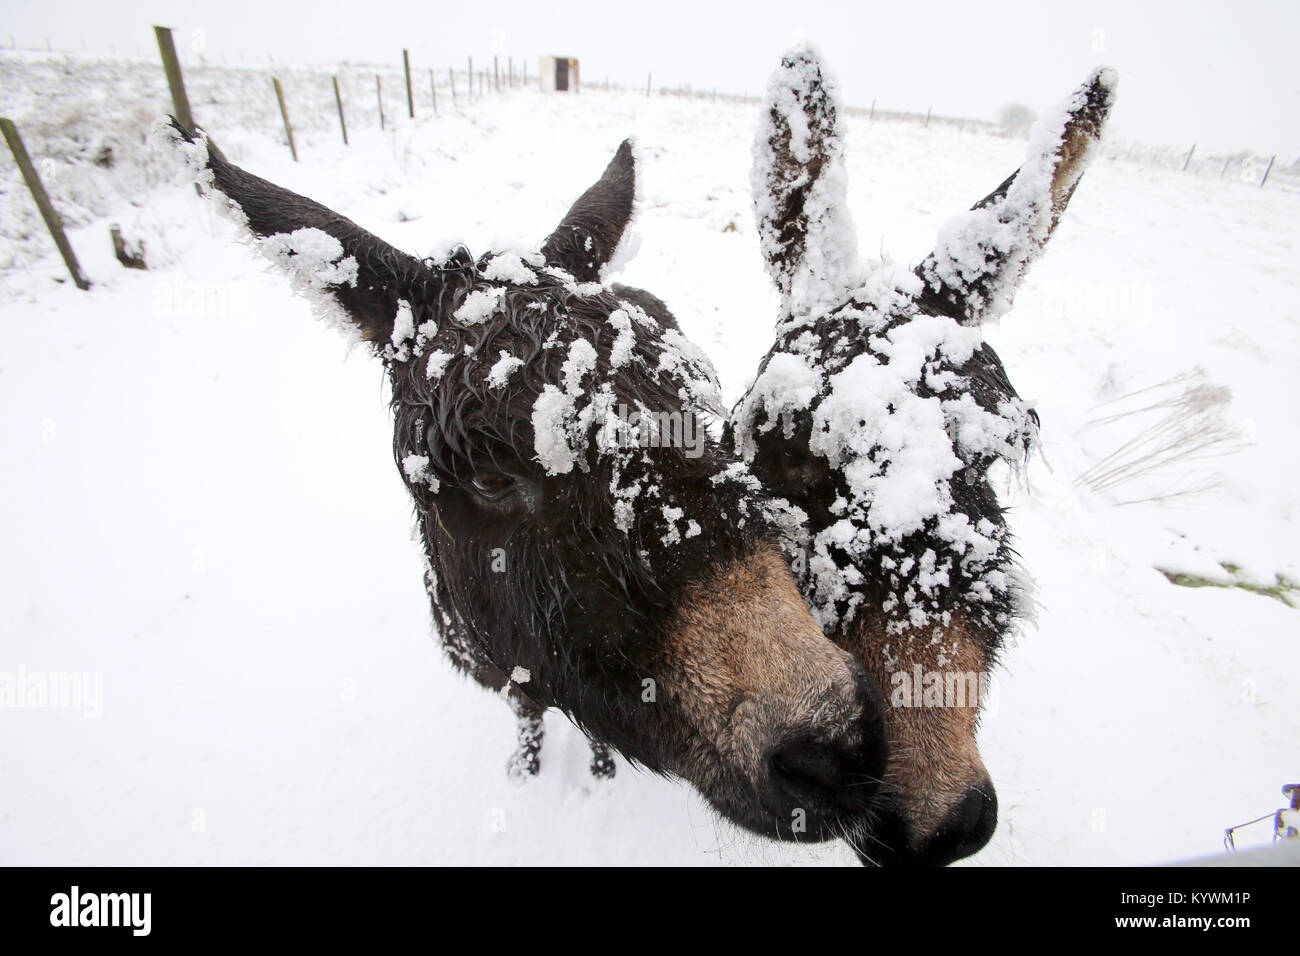 Belfast, Northern Ireland, UK. 16th Jan, 2018. A pair of Donkeys brave the winter conditions on the hills around Stock Photo